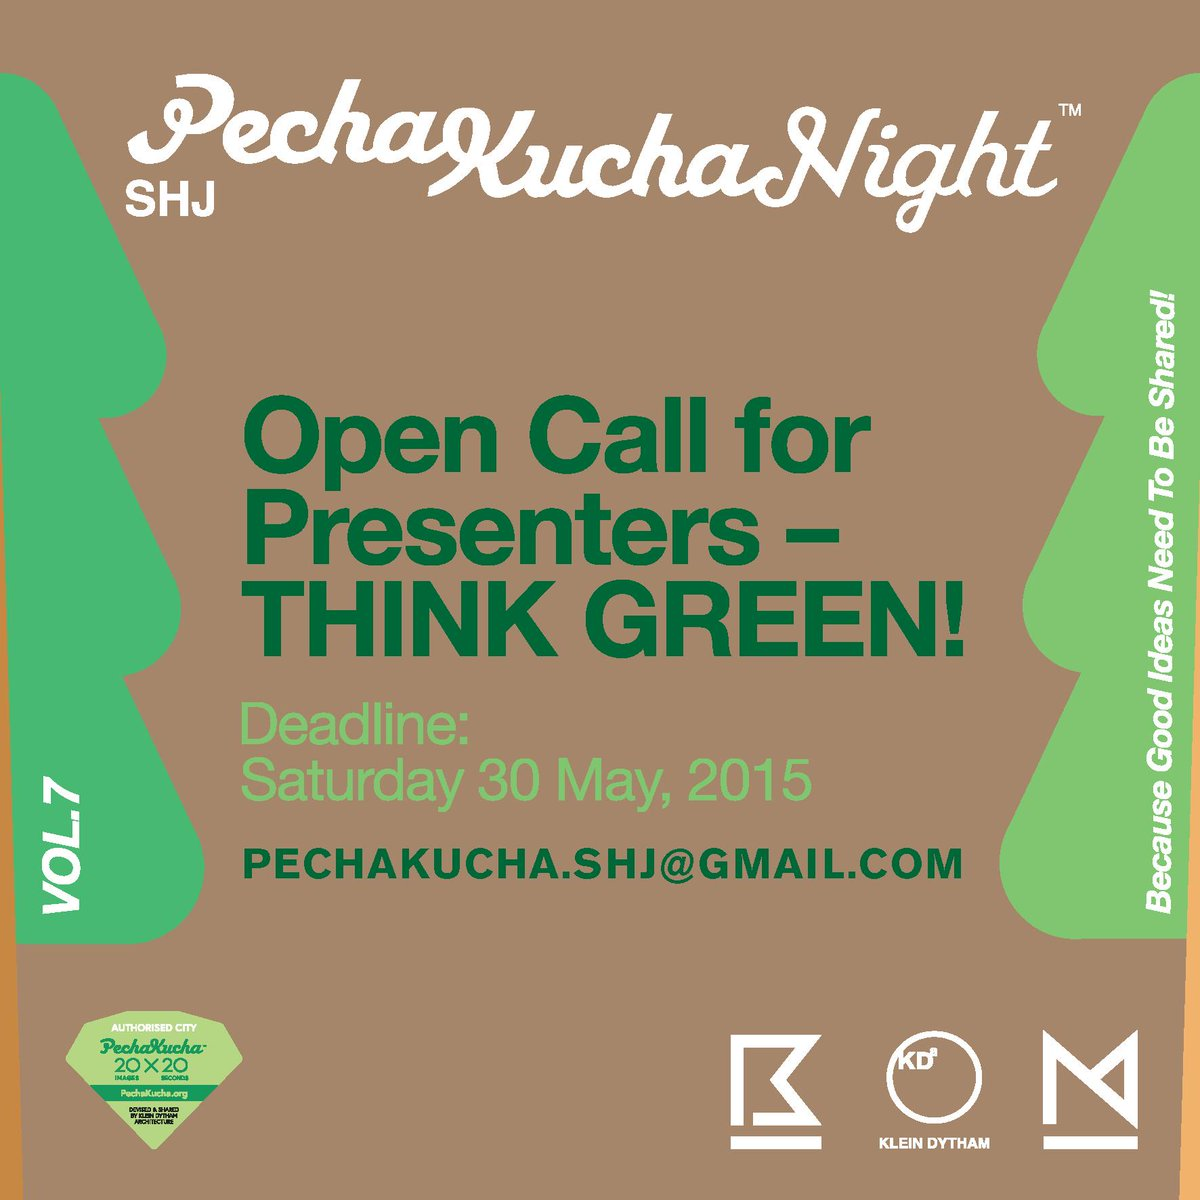 Open Call for @PKNshj presenters with #green initiatives. Email pechakucha.shj@gmail.com to apply. Deadline 30 May http://t.co/vBXW804uYc